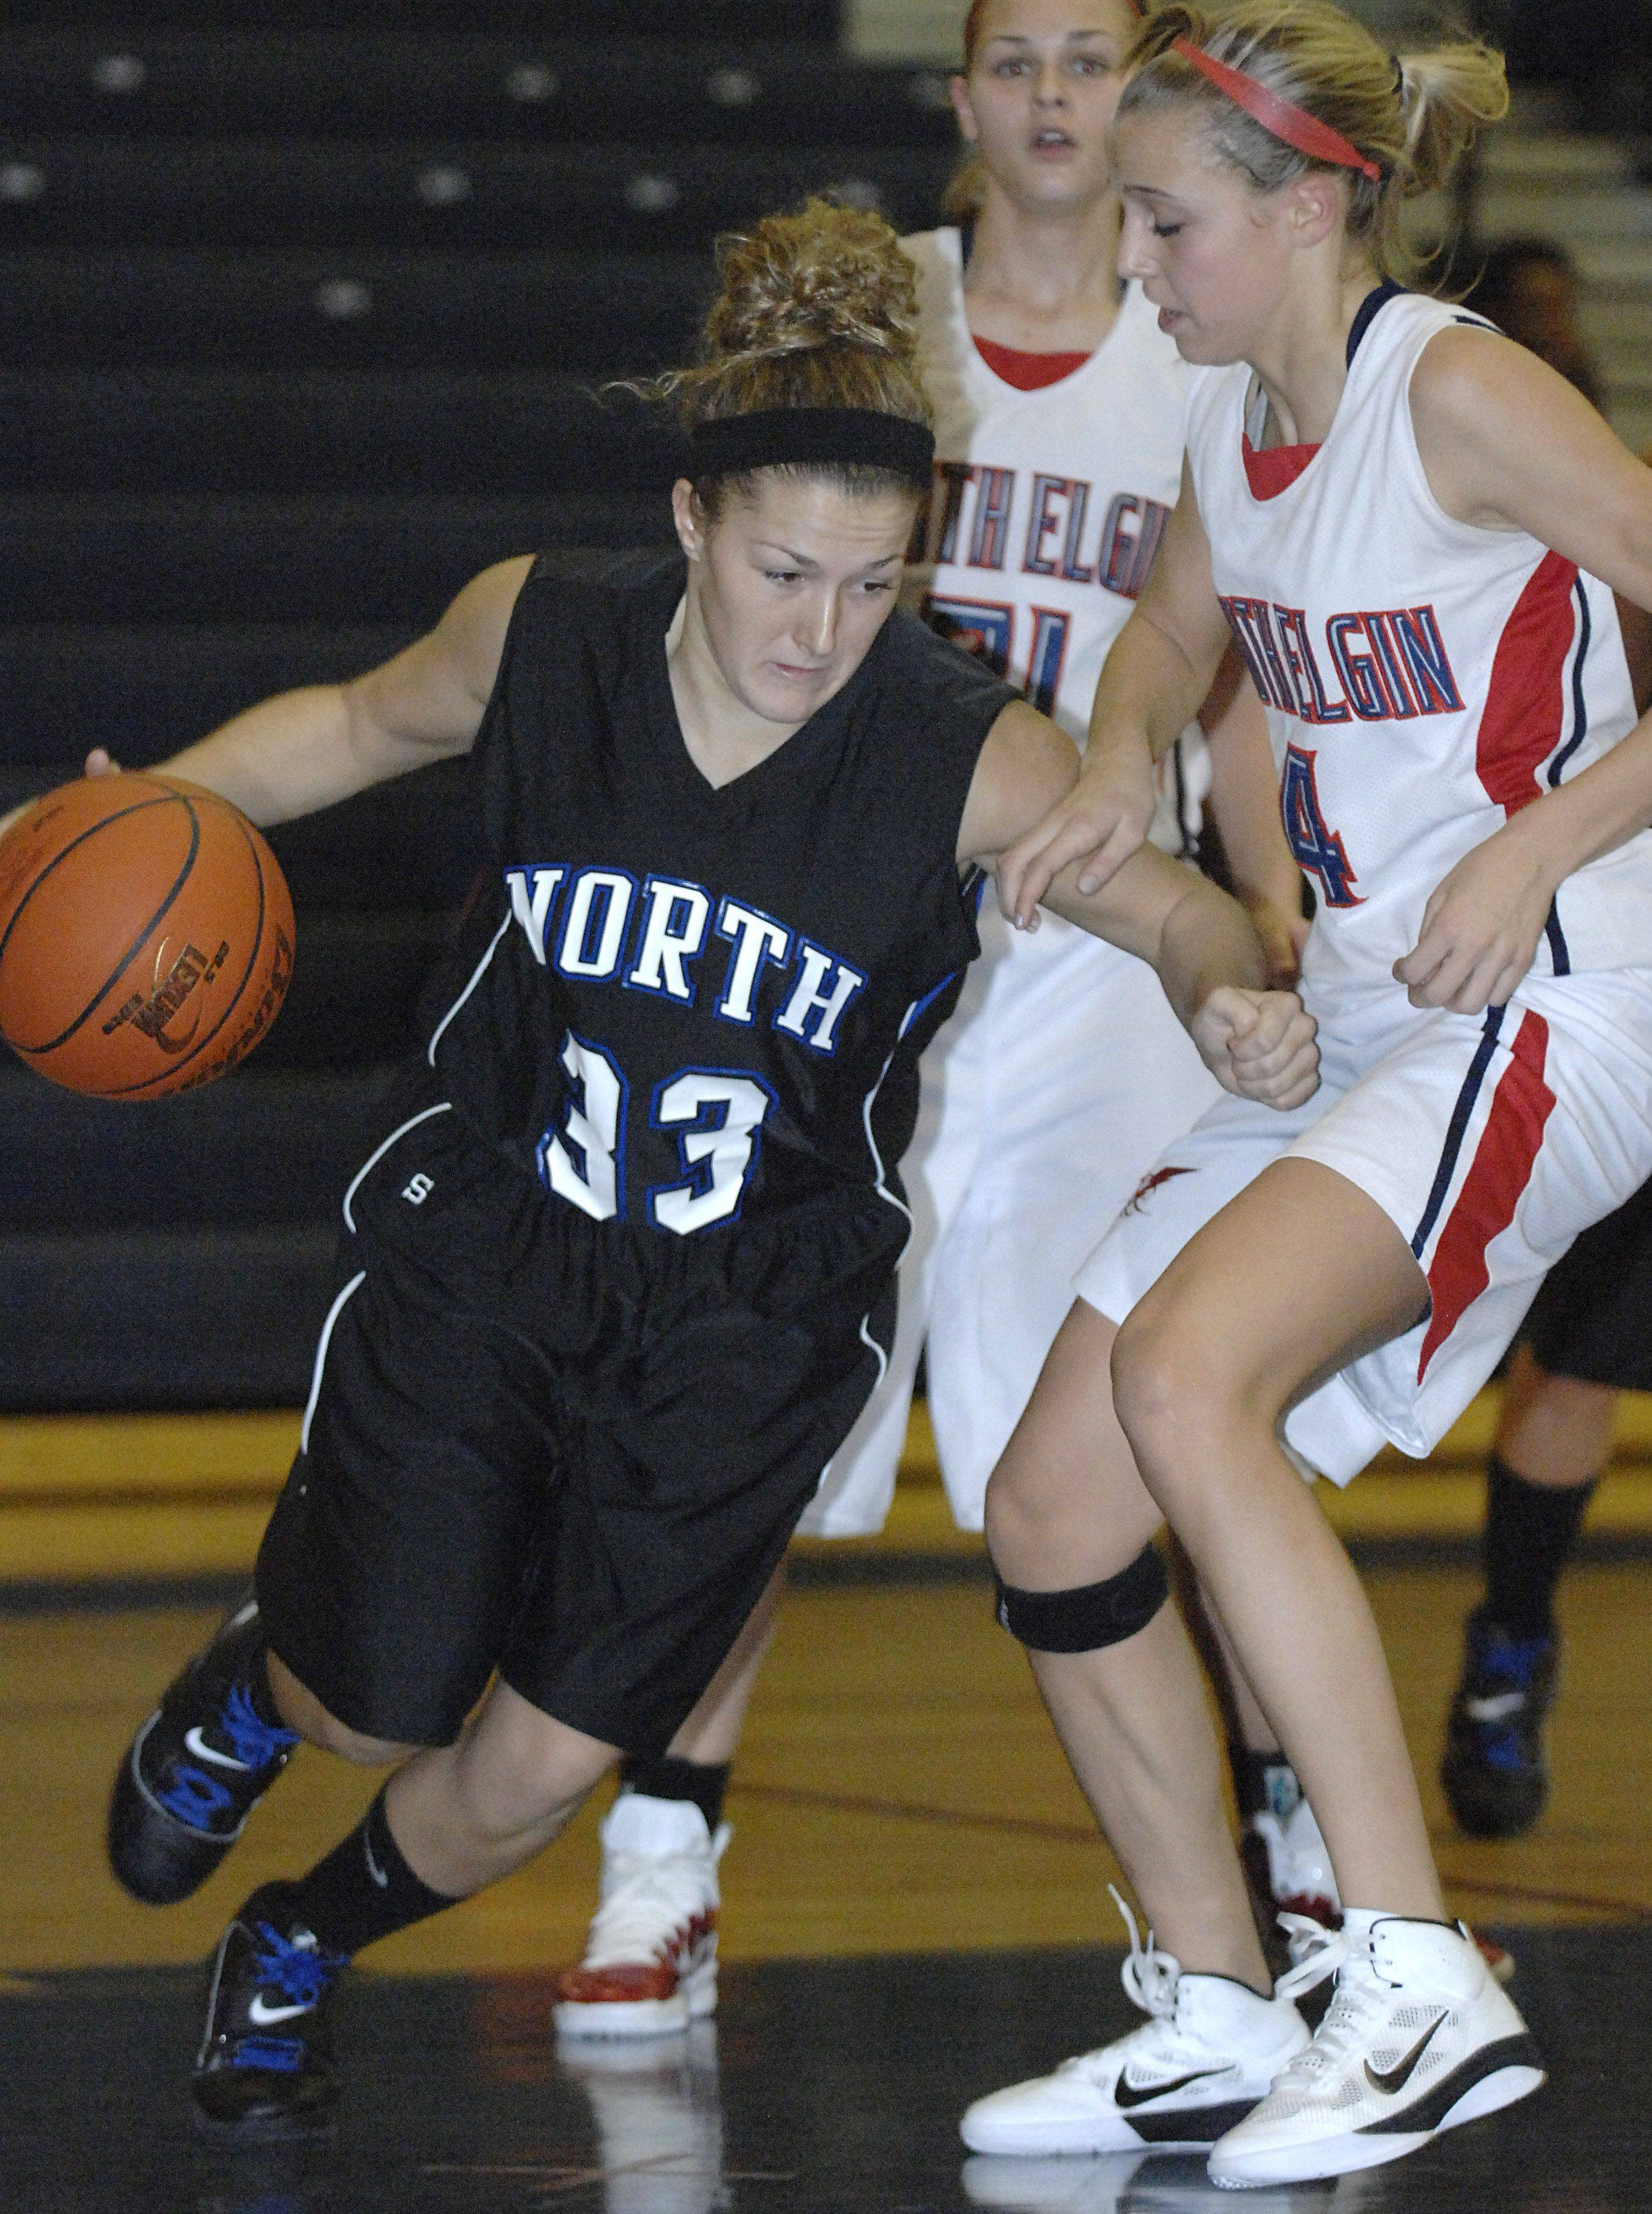 Laura Stoecker/lstoecker@dailyherald.com South Elgin's St. Charles North's Taylor Russell drives around South Elgin's Savanah Uveges in the second quarter on Saturday, December 11.